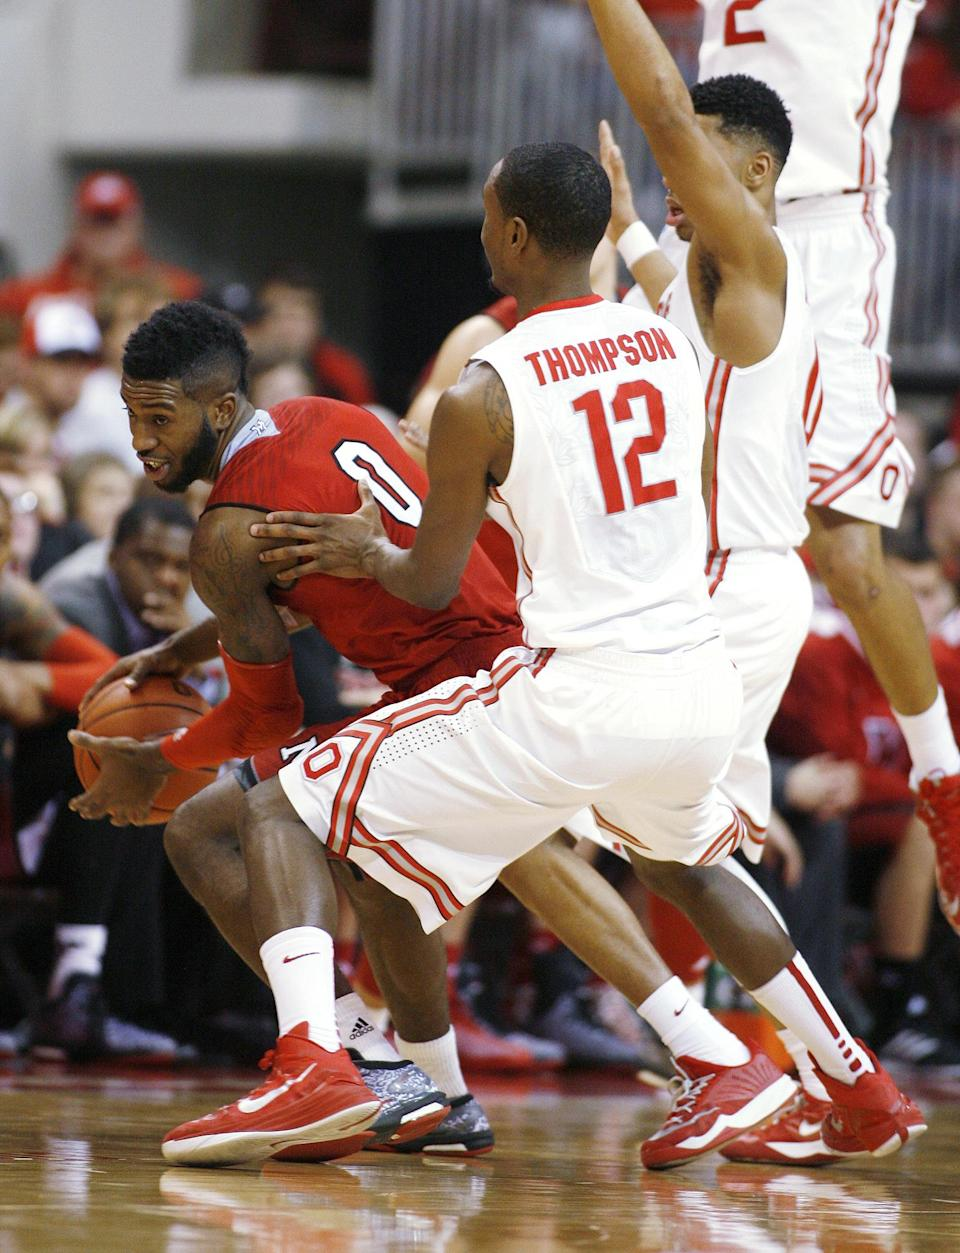 Ohio State's Sam Thompson (12) guards Miami's Geovonie McKnight (0) during the second half of an NCAA college basketball game, Monday, Dec. 22, 2014, in Columbus, Ohio. Ohio State won 93-55. (AP Photo/Mike Munden)